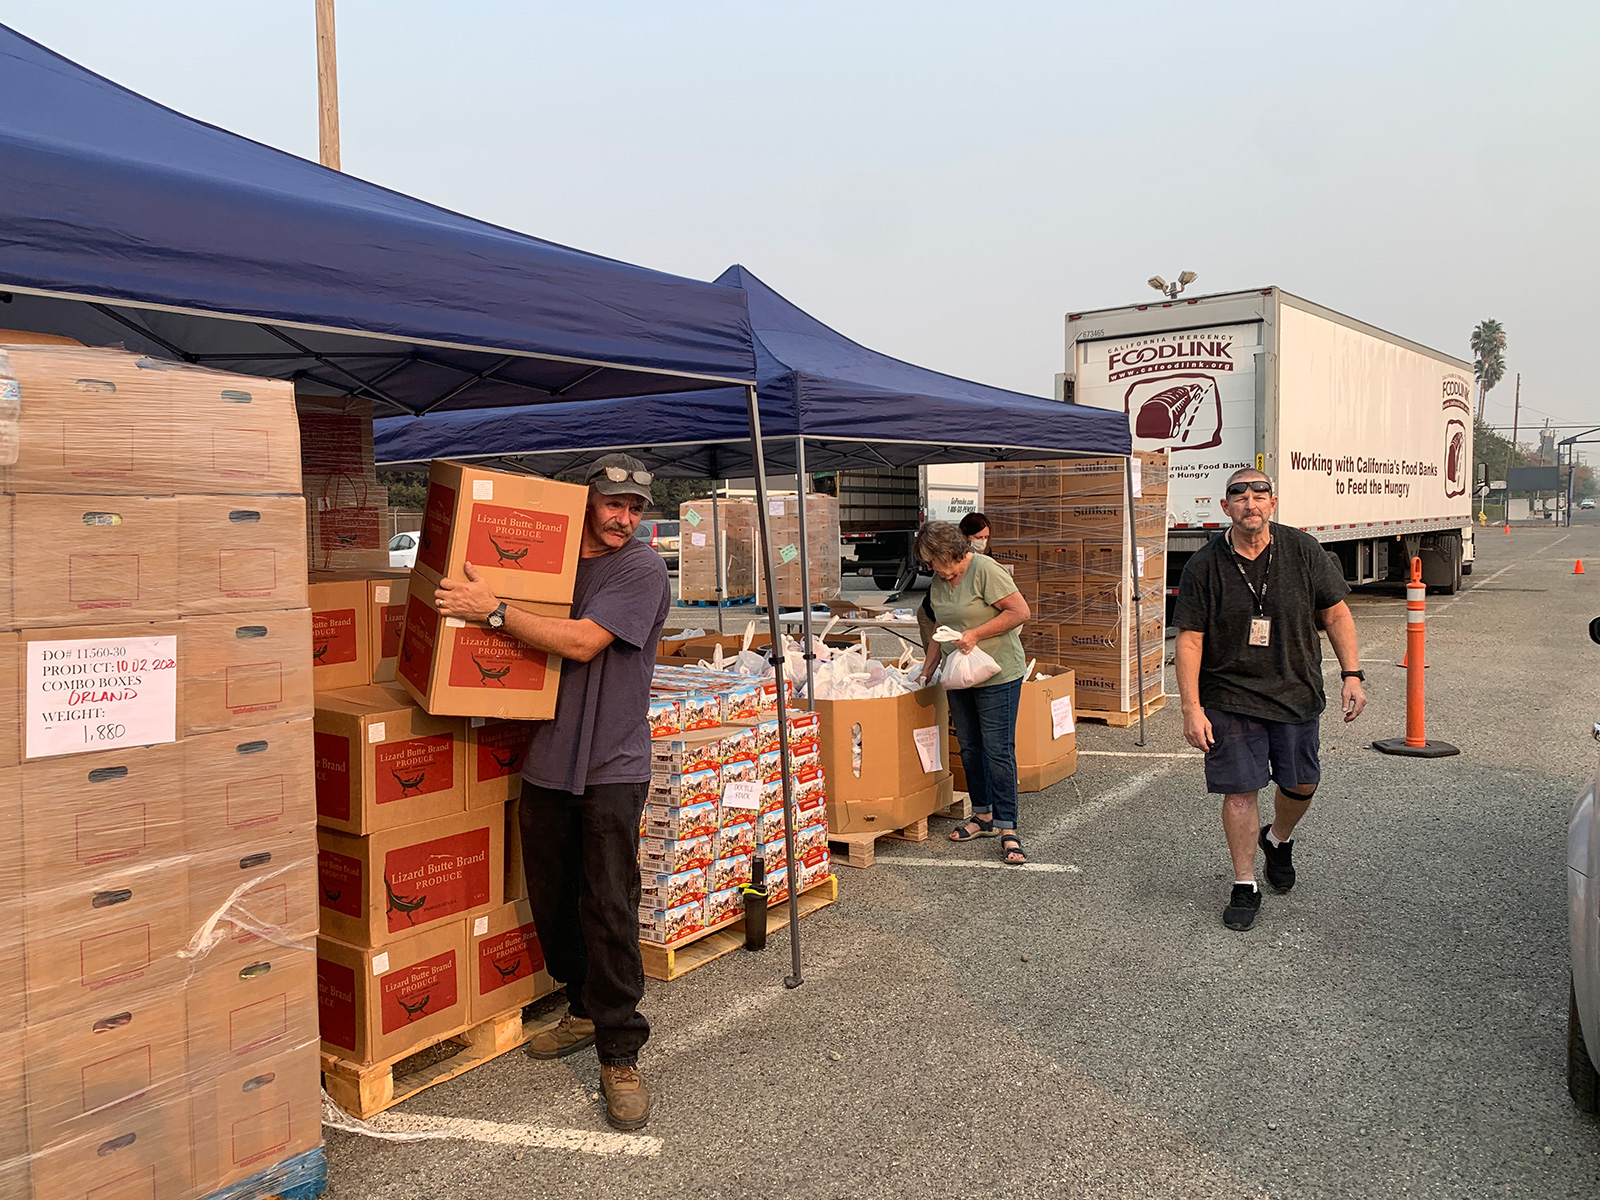 Volunteers share goods and food with community members affecting by the wildfires.